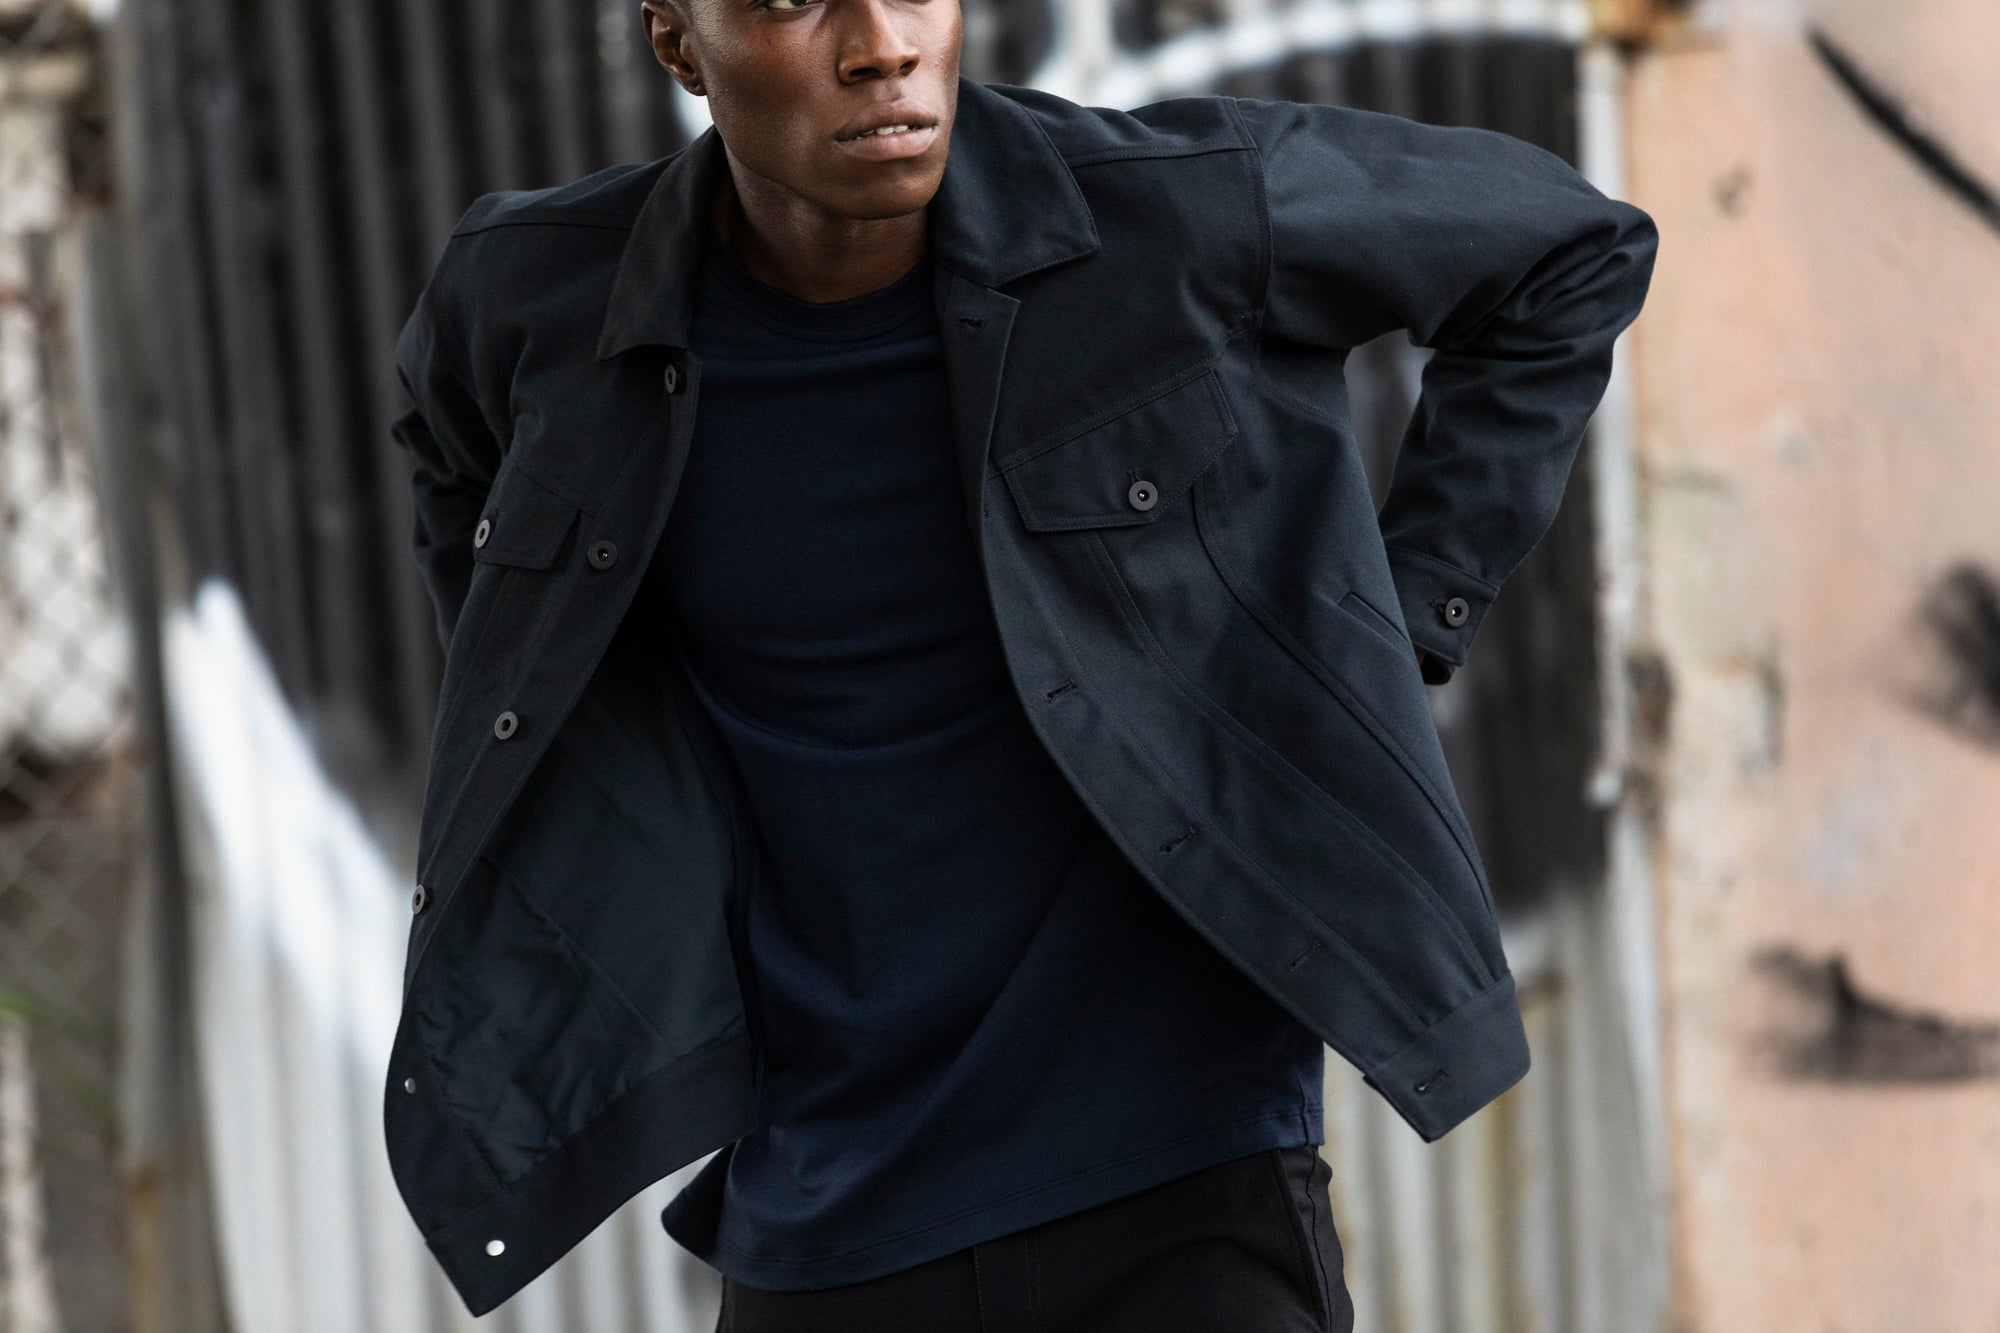 Edem wearing the Experiment 249 - Duckcloth Shank Jacket in Charcoal